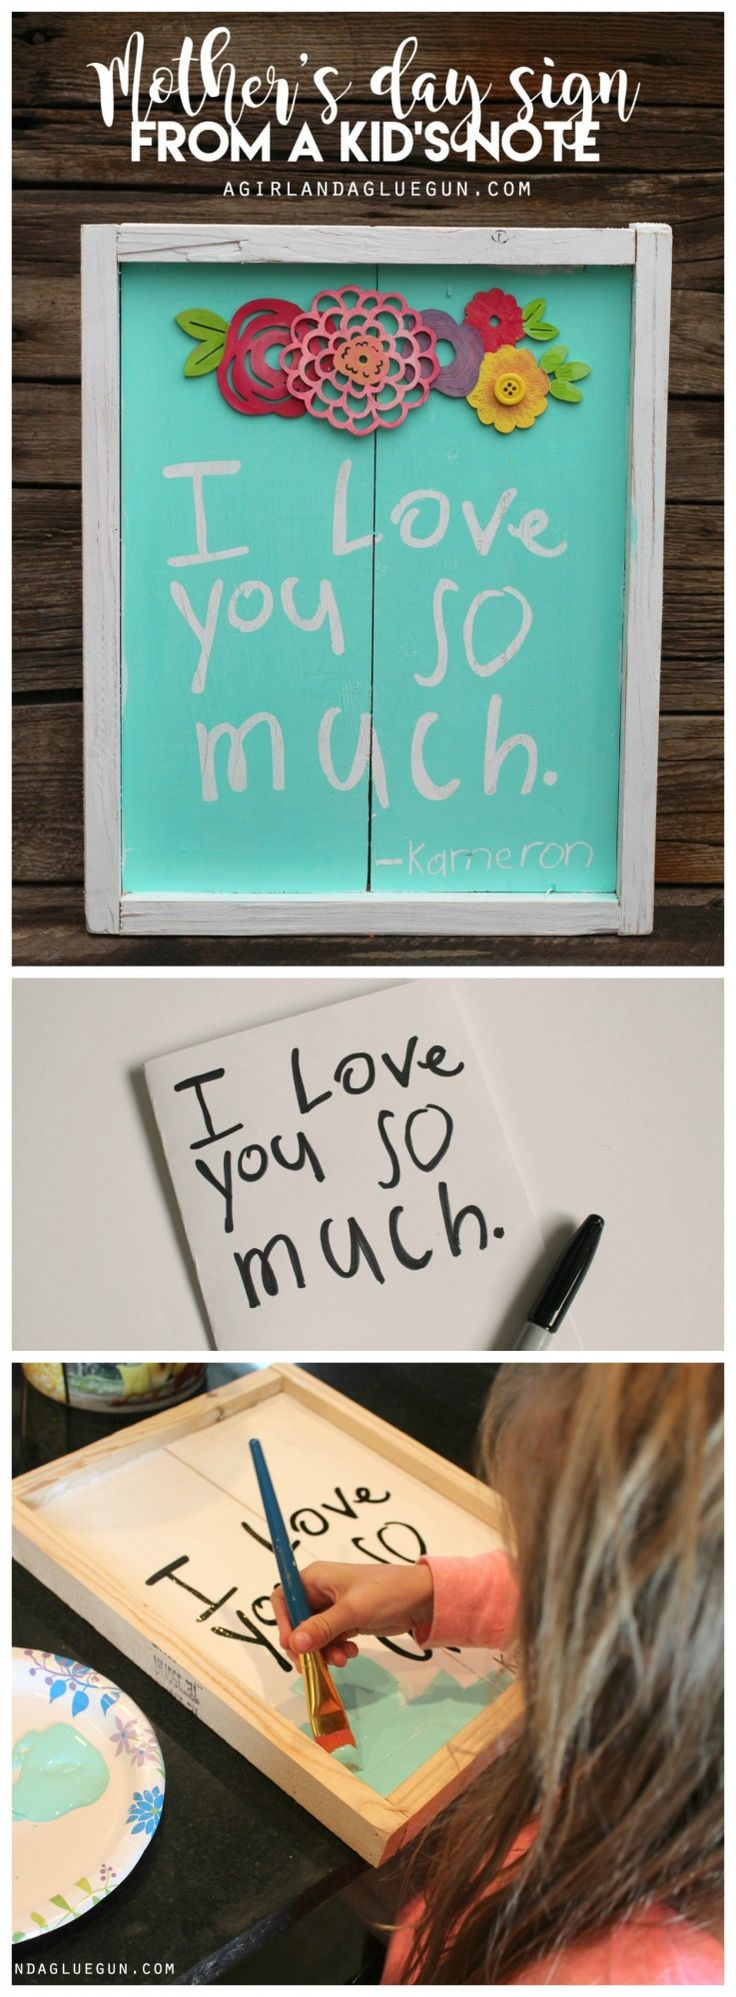 the best mother's day present idea--turn your child's note into a sweet sign